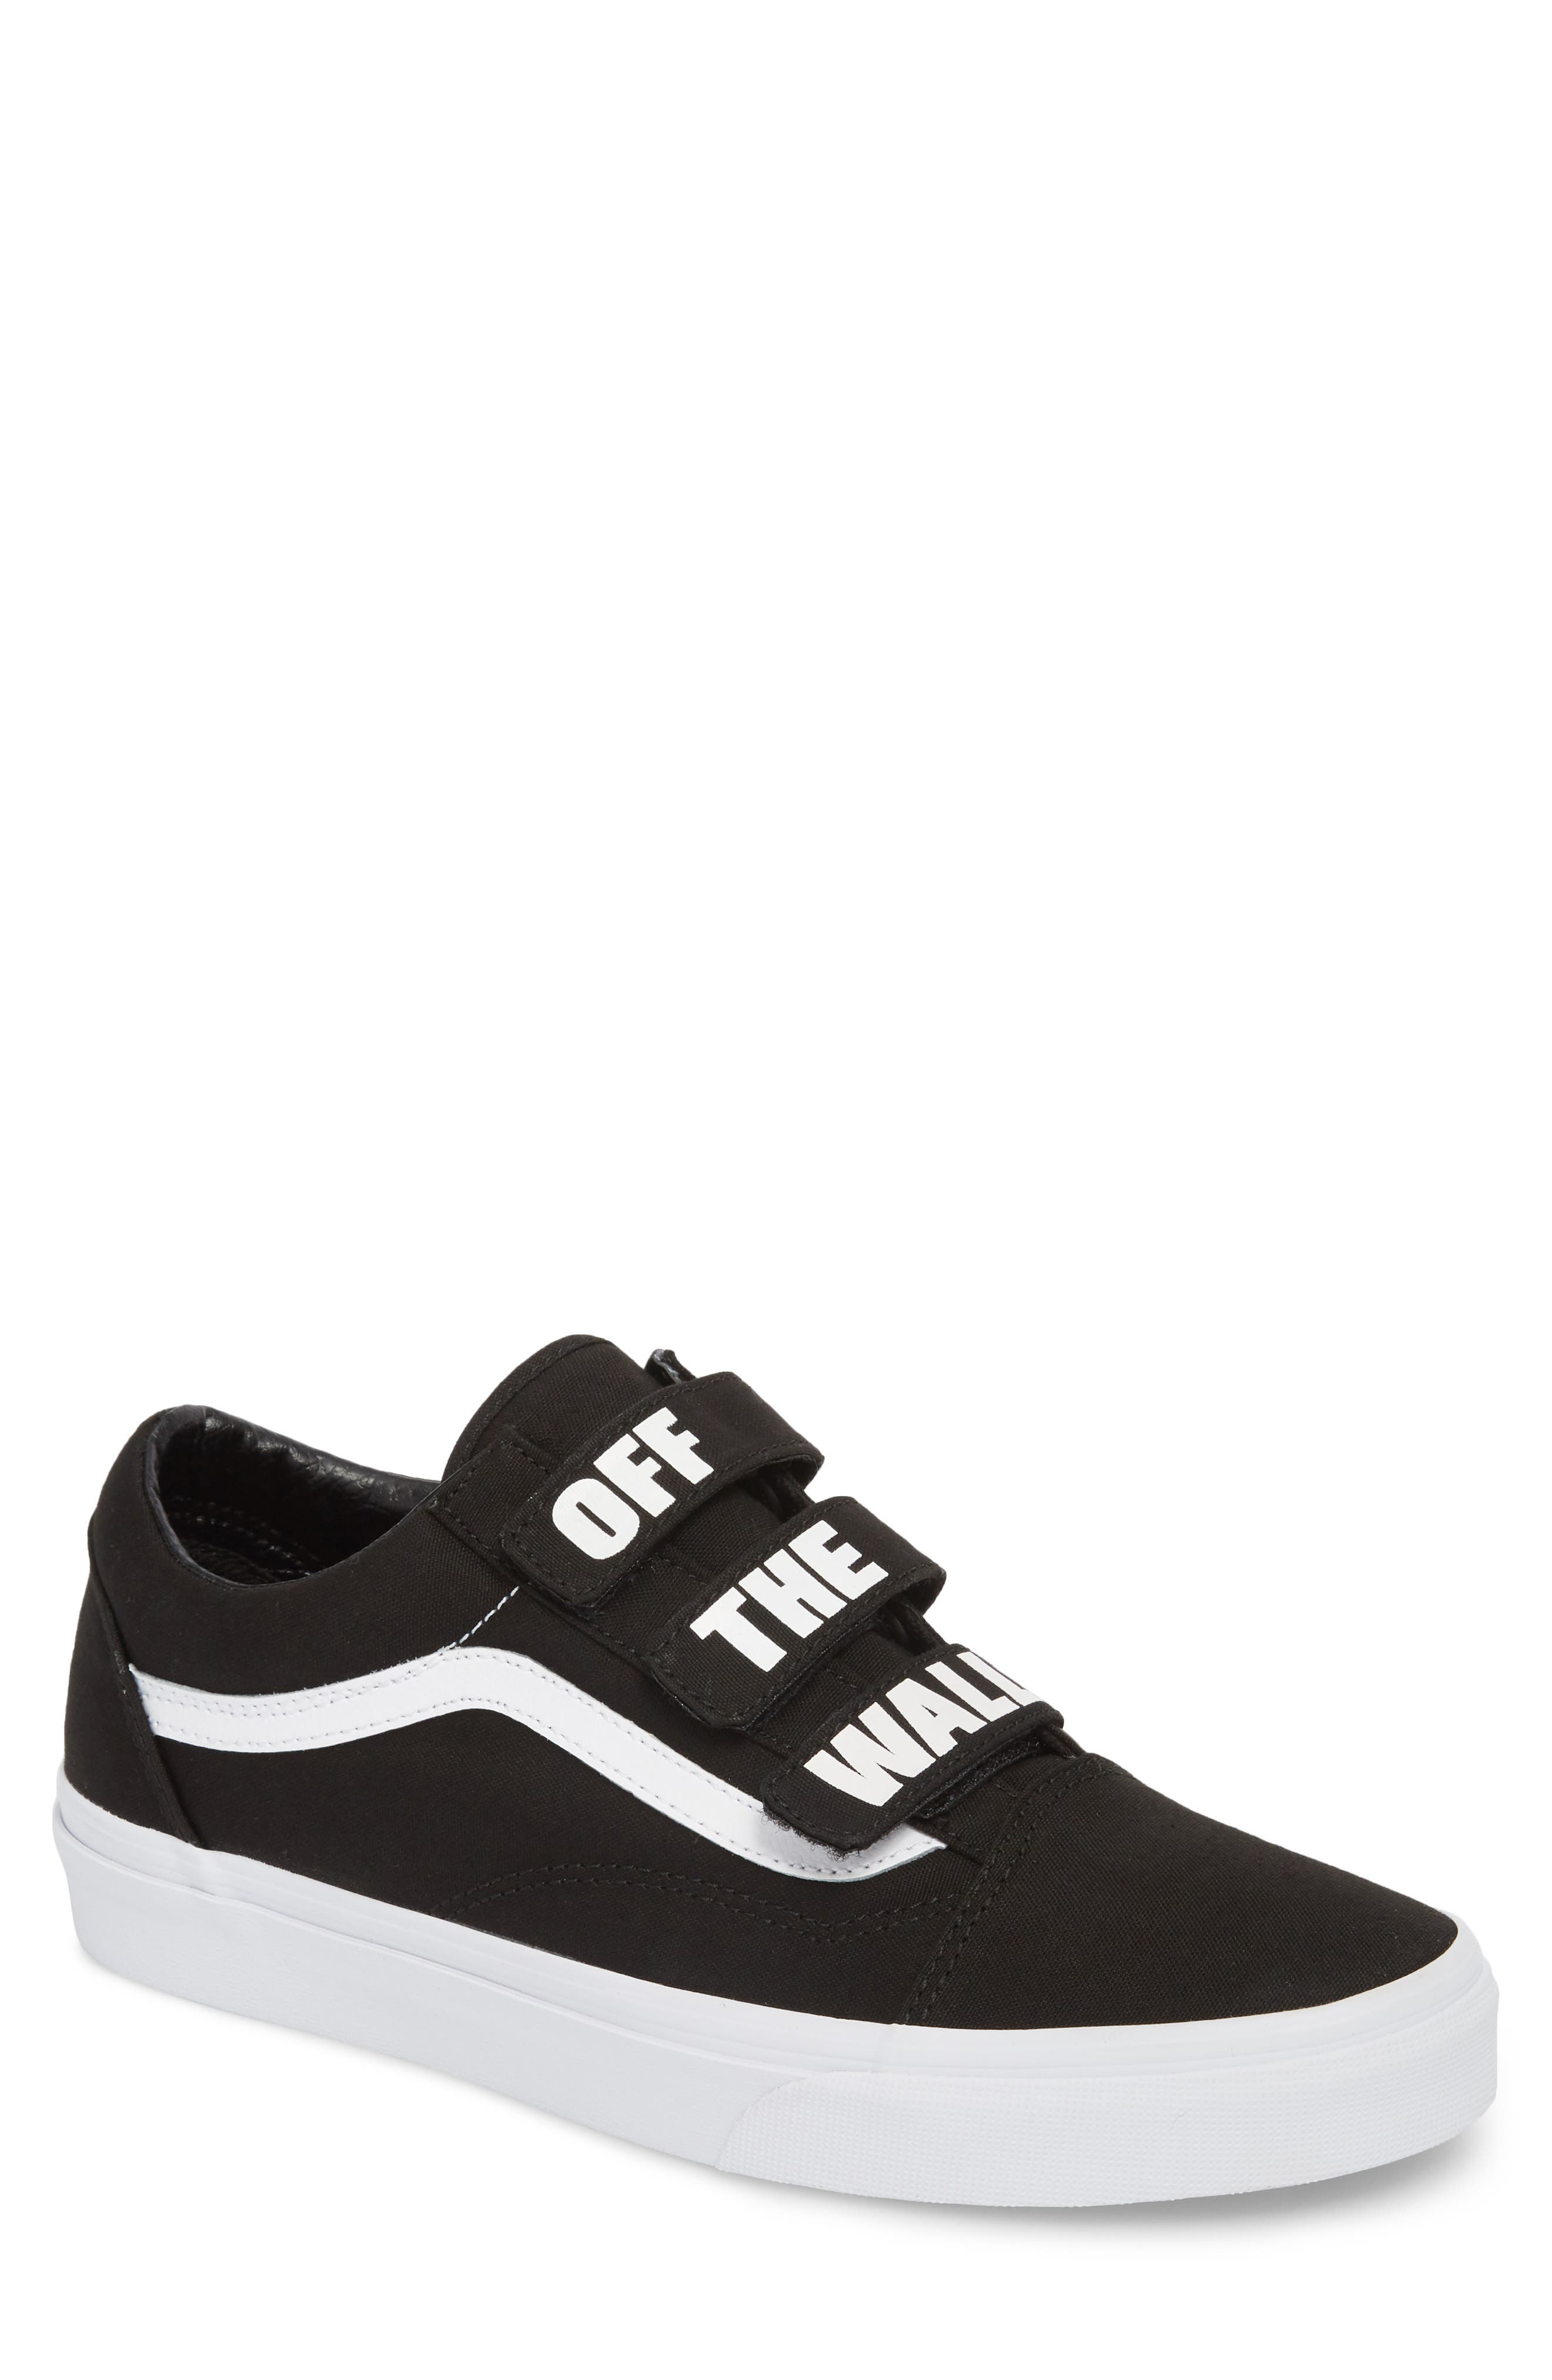 Off the Wall Old Skool V Sneaker, Main, color, 001